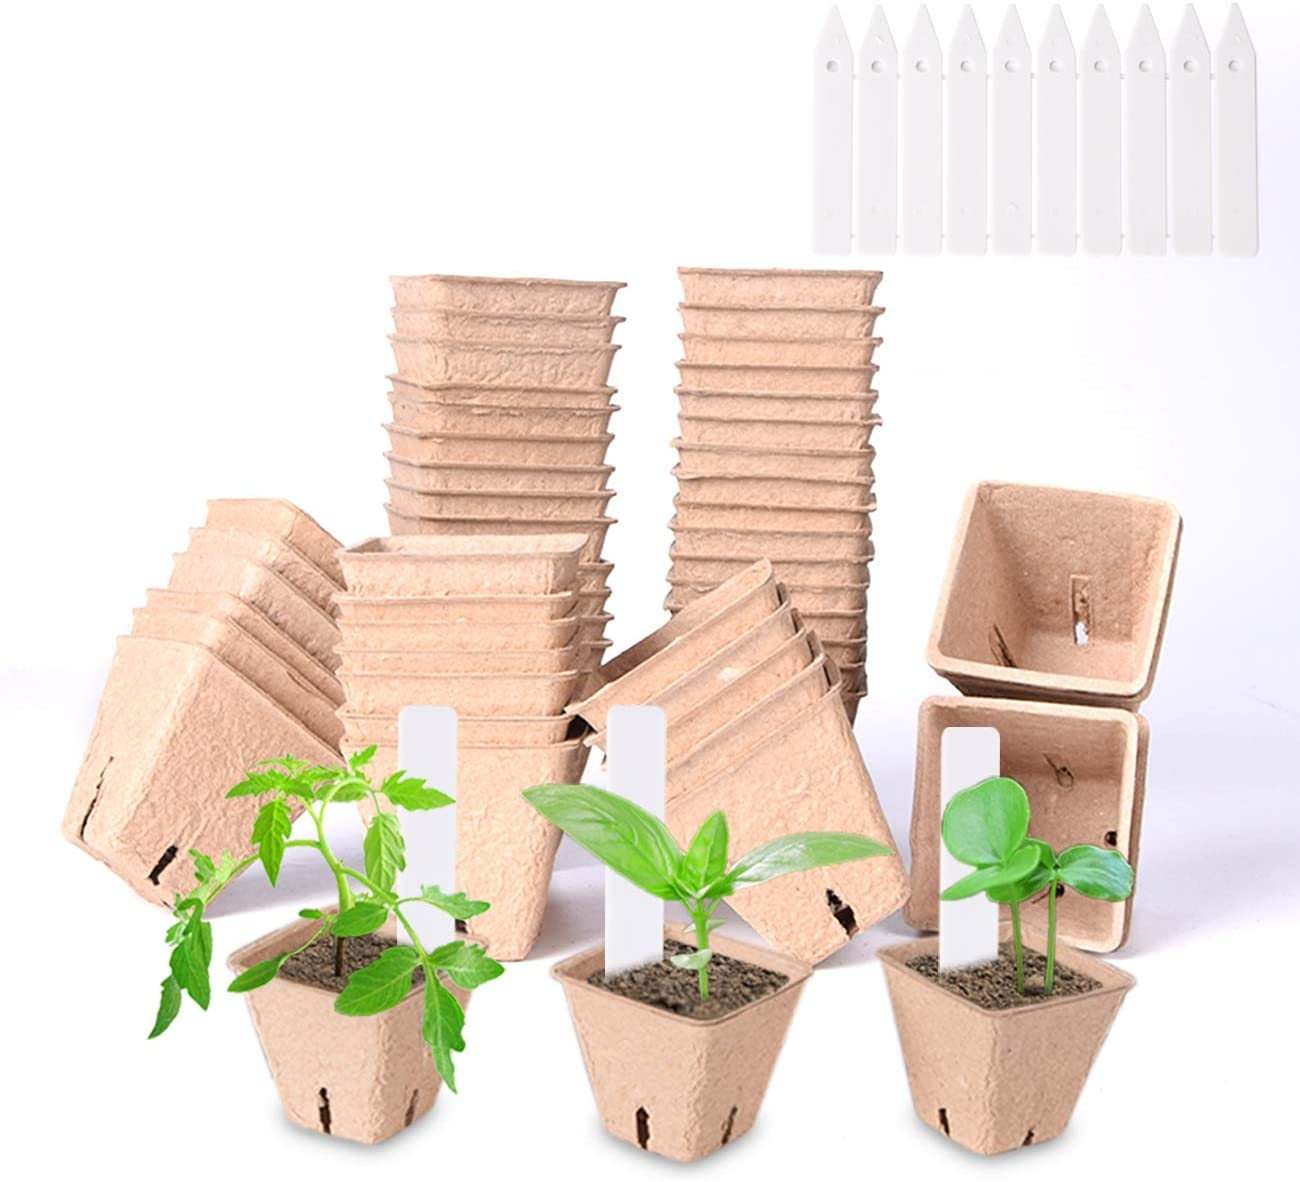 50 Packs 2.36'' Plant & Seed Starter Peat Pots Kit for Garden, 100% Eco-Friendly Organic Biodegradable SeedlingTrays with 10 Plastic Plant Labels (50 Pack, 2.36'')